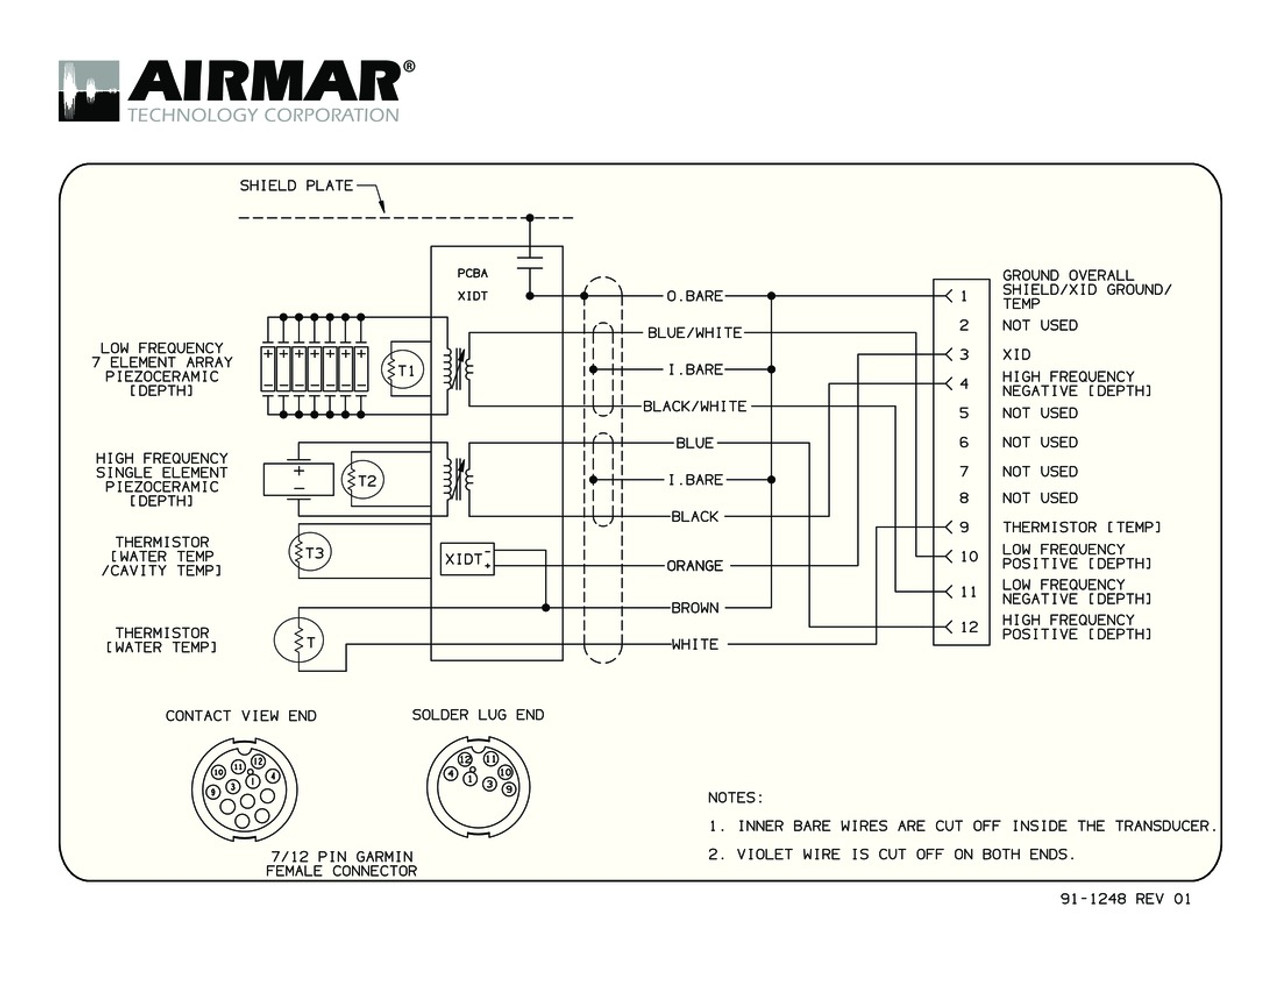 hight resolution of airmar wiring diagram cm275 blue bottle marine transducer for lowrance wiring diagrams transducer wiring diagram